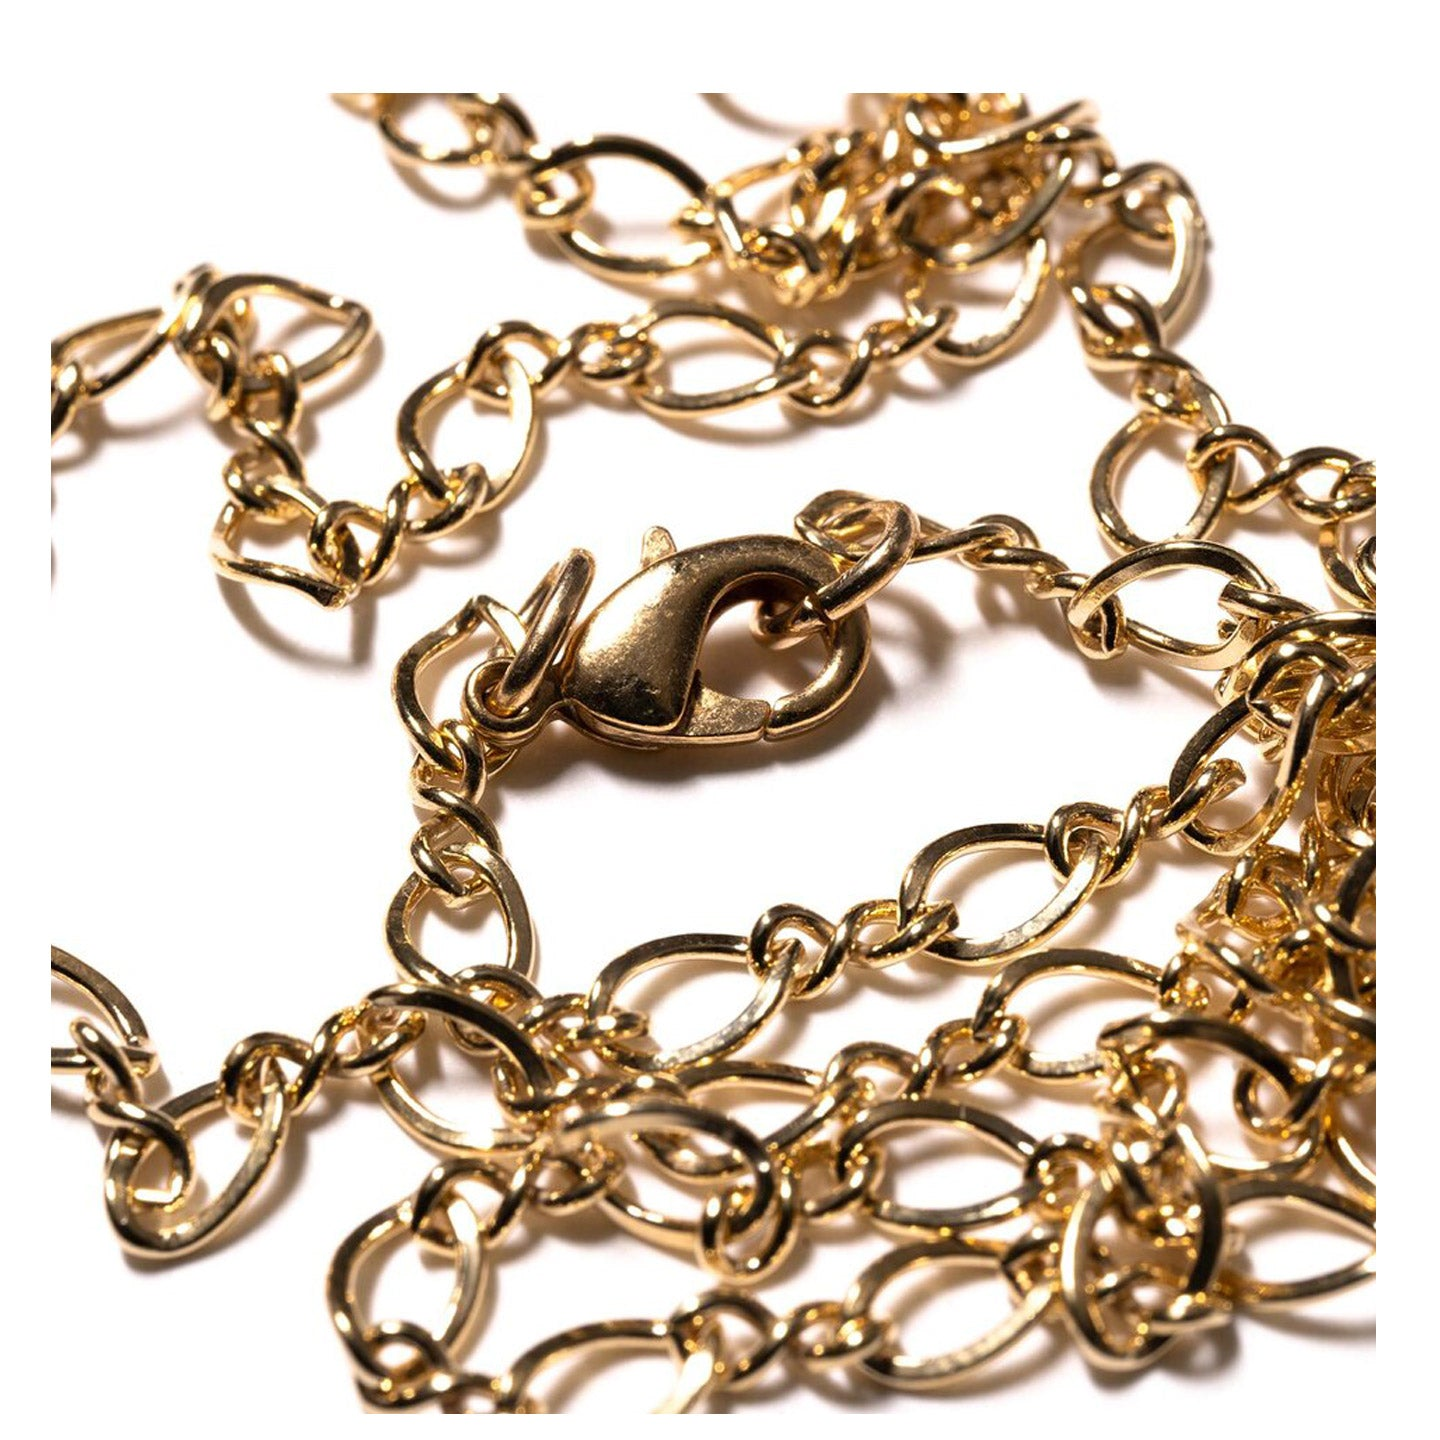 MAPLE FIGURE EIGHT CHAIN 14K GOLD FILLED